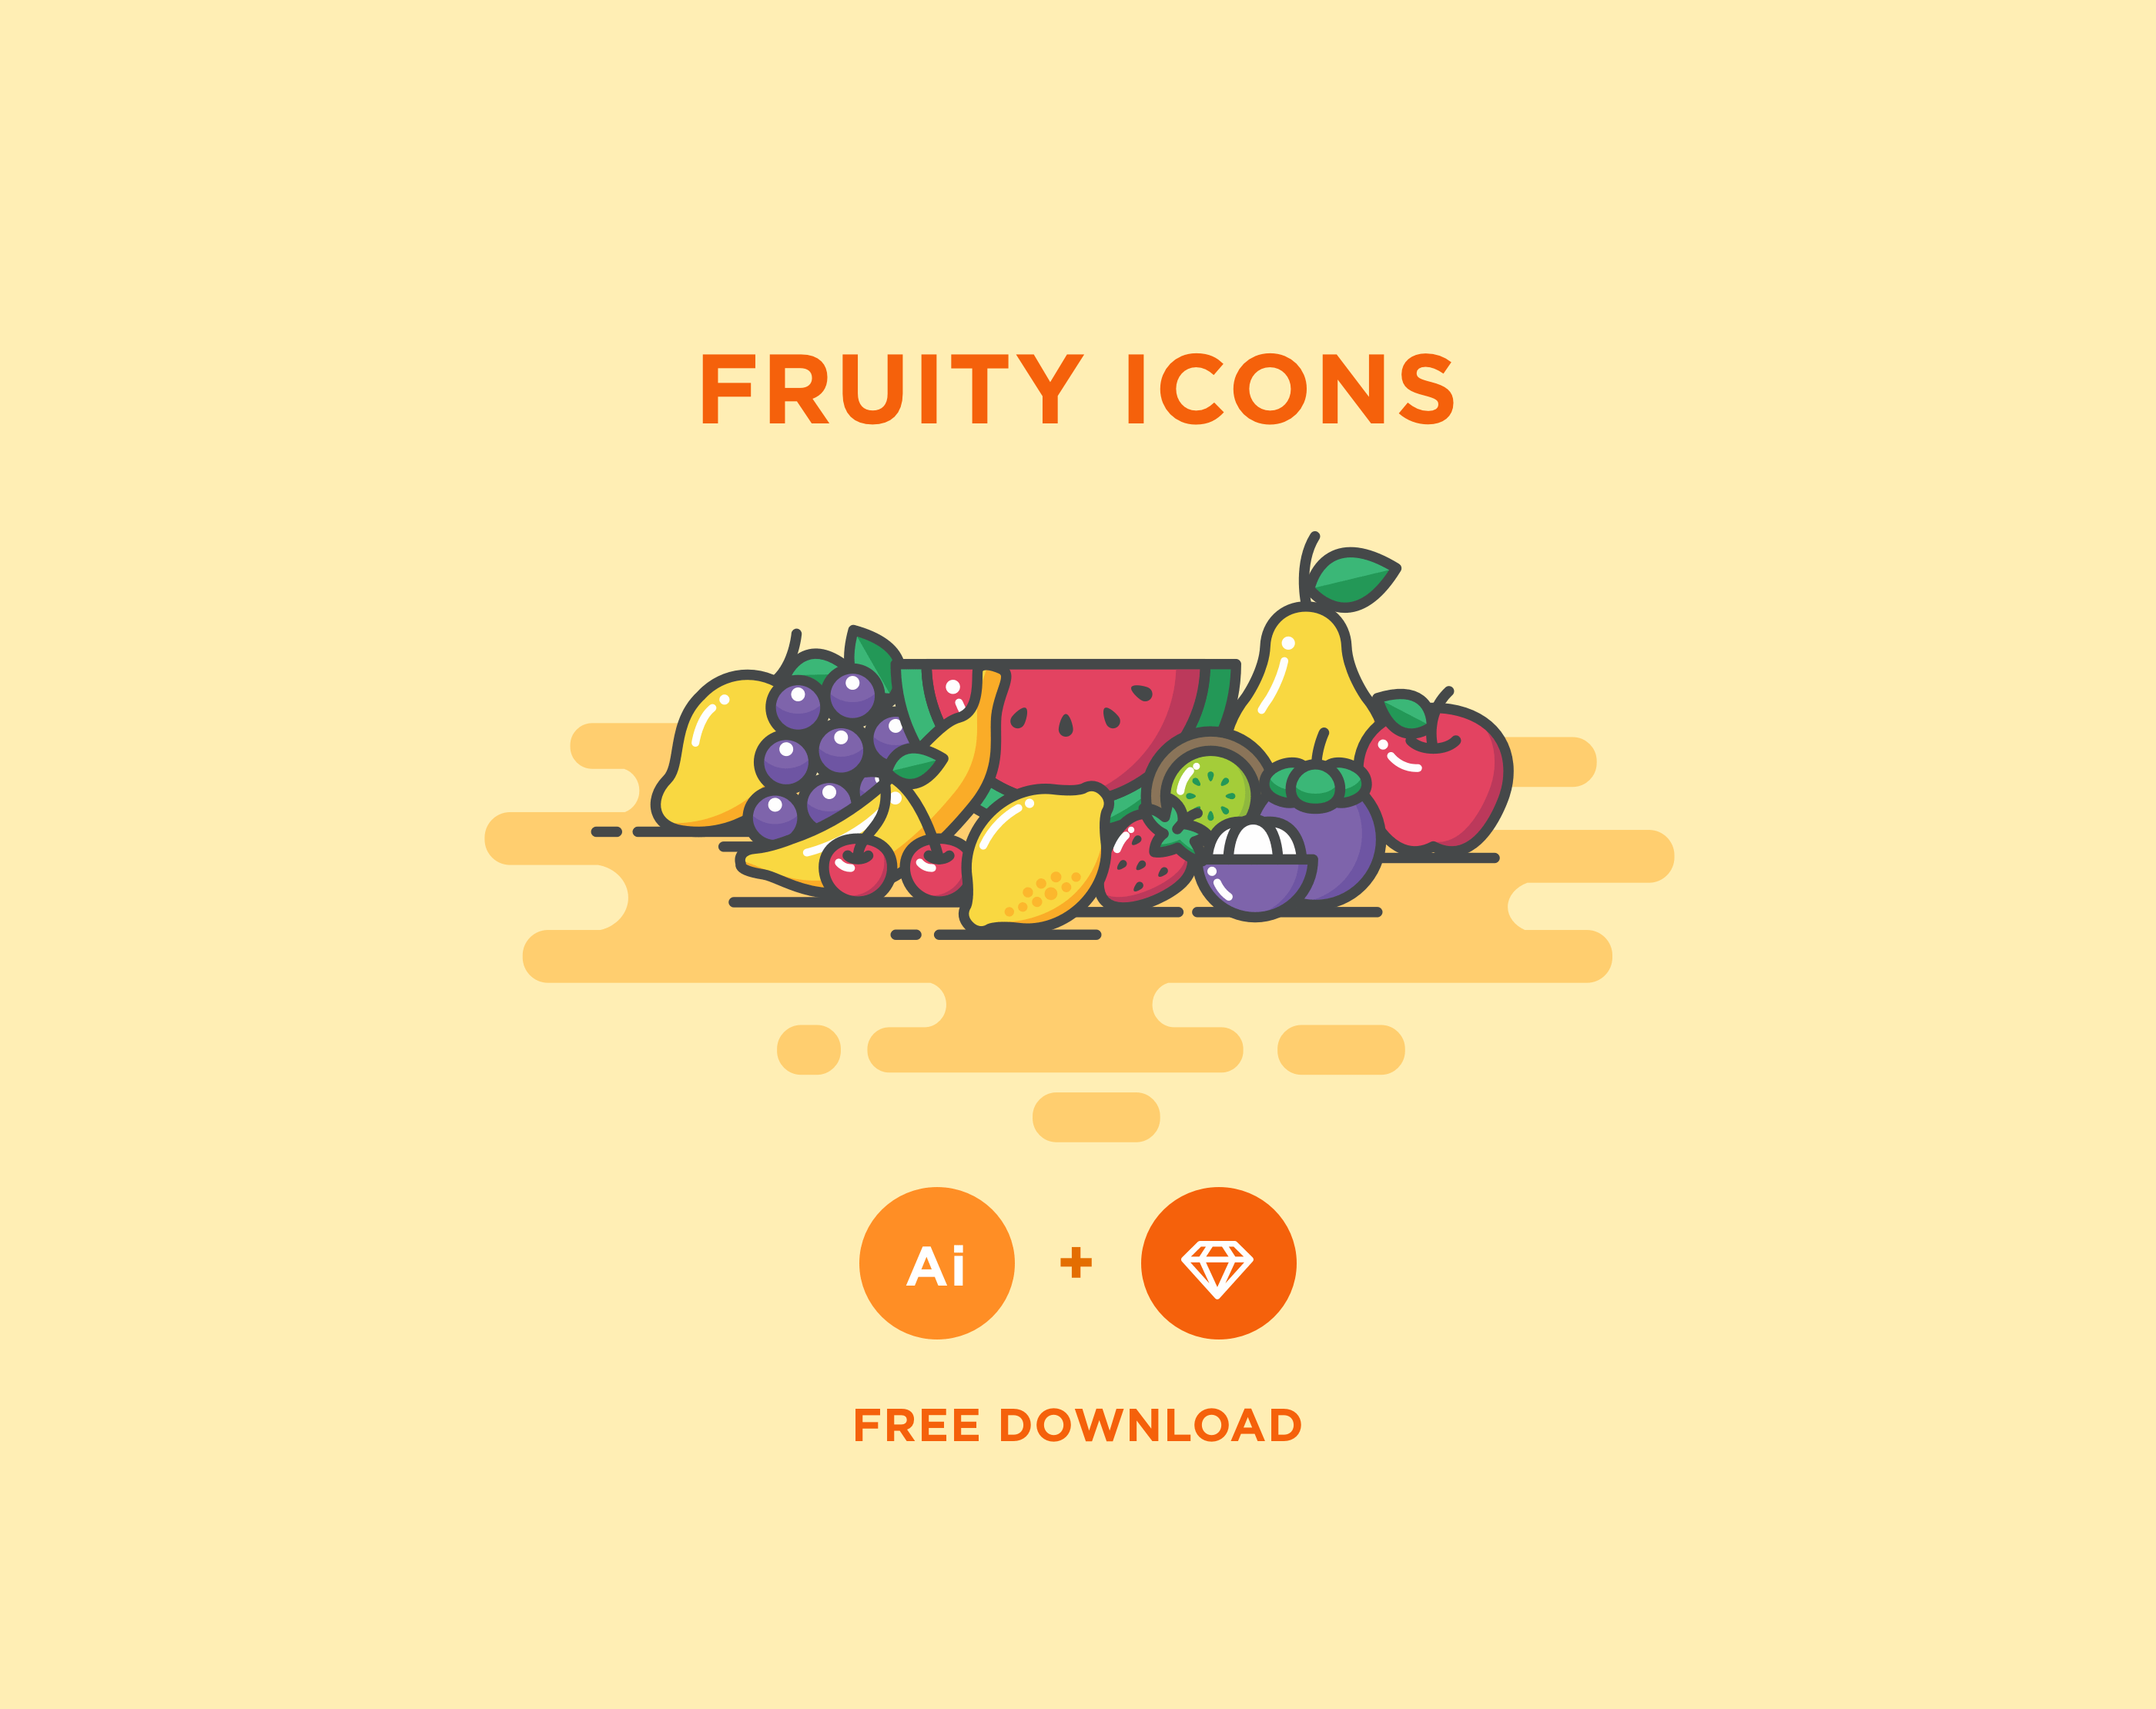 fruity-icons